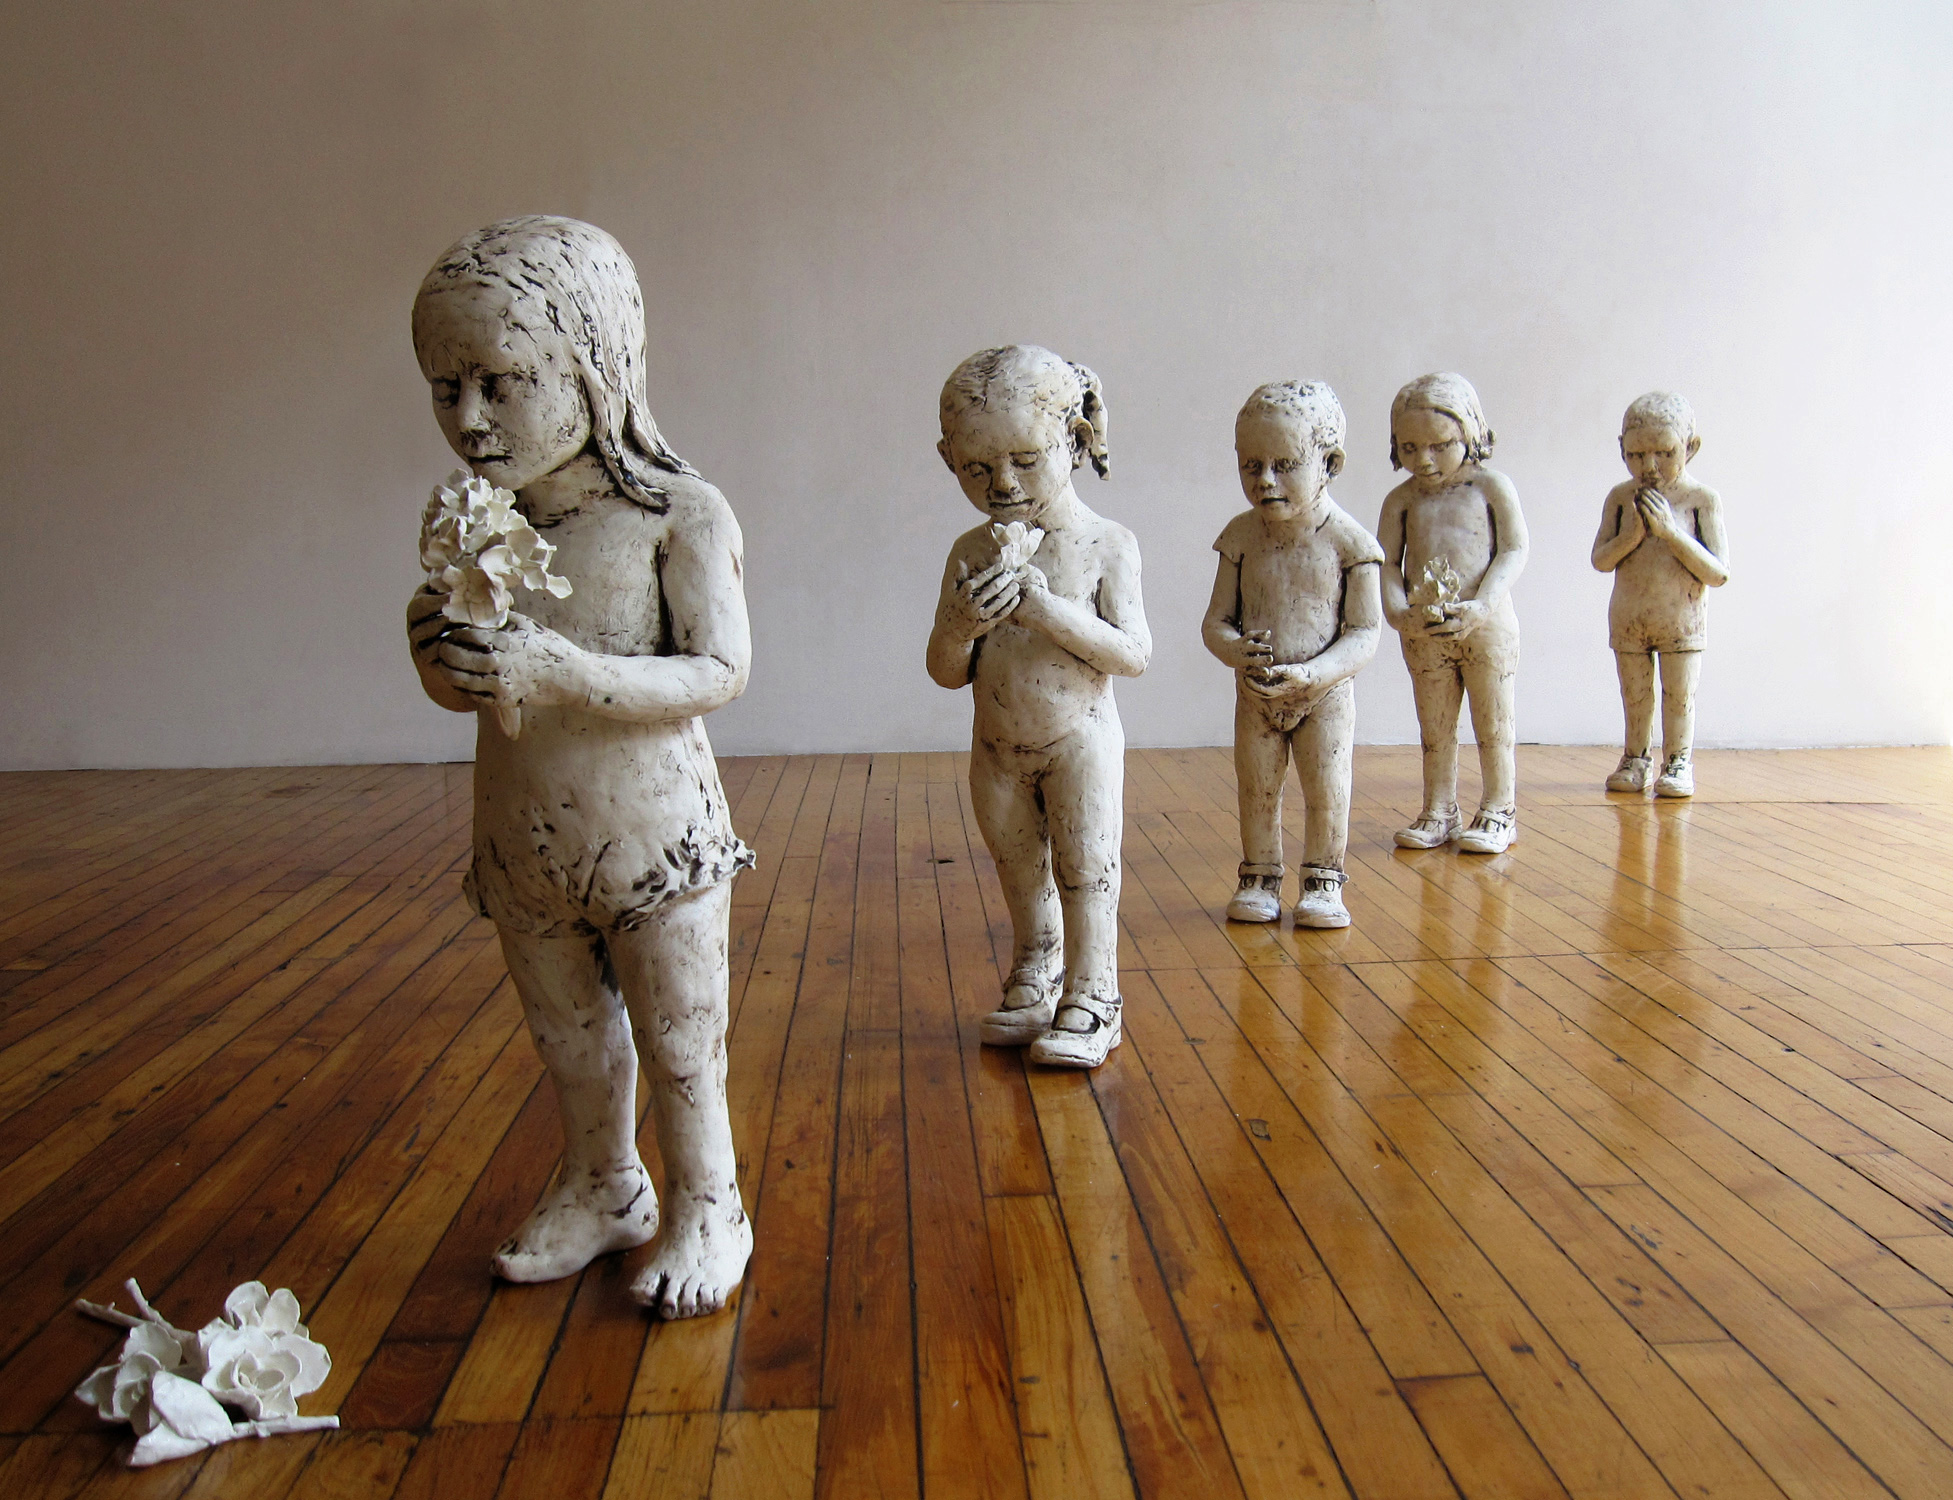 Dia de Los Inocentes, 2010, Ceramic, 32 in, x 10 ft. x 8 ft. National Museum of Mexican Art, Chicago, Illinois